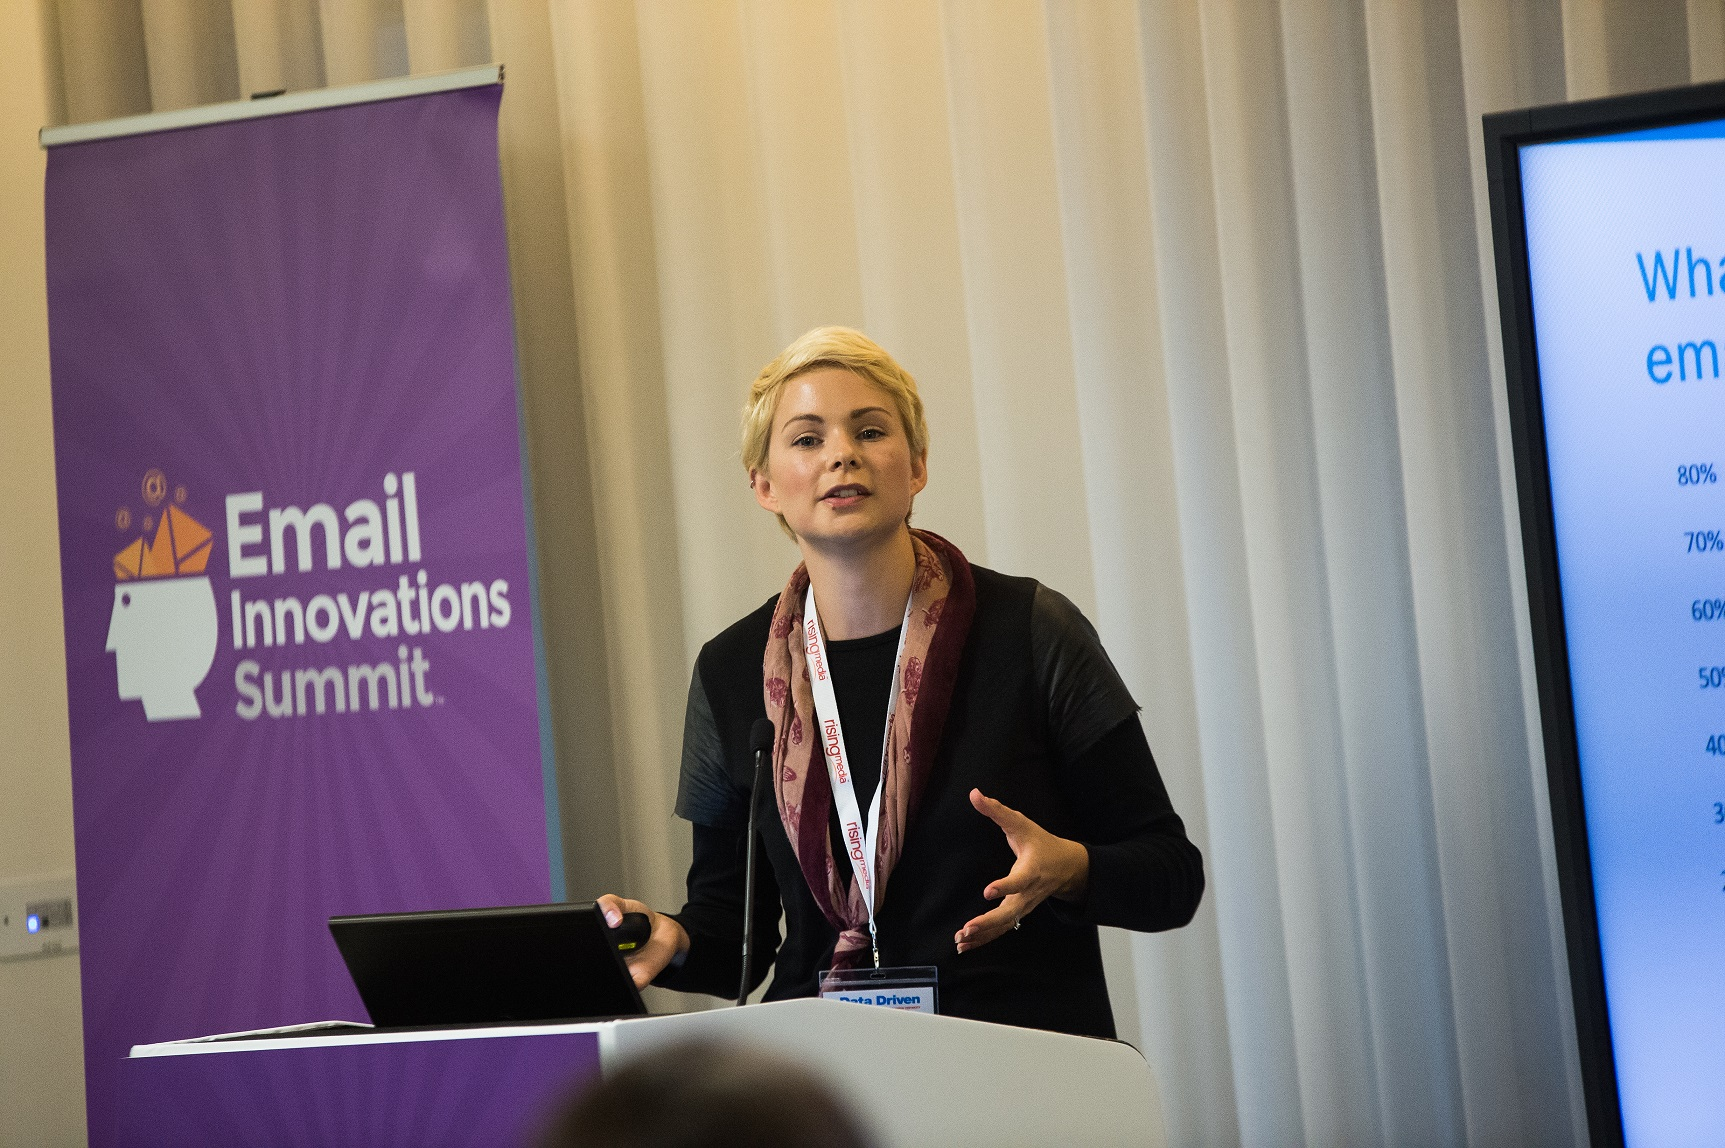 Jenna Tiffany speaking at Email Innovations Summit London 2017